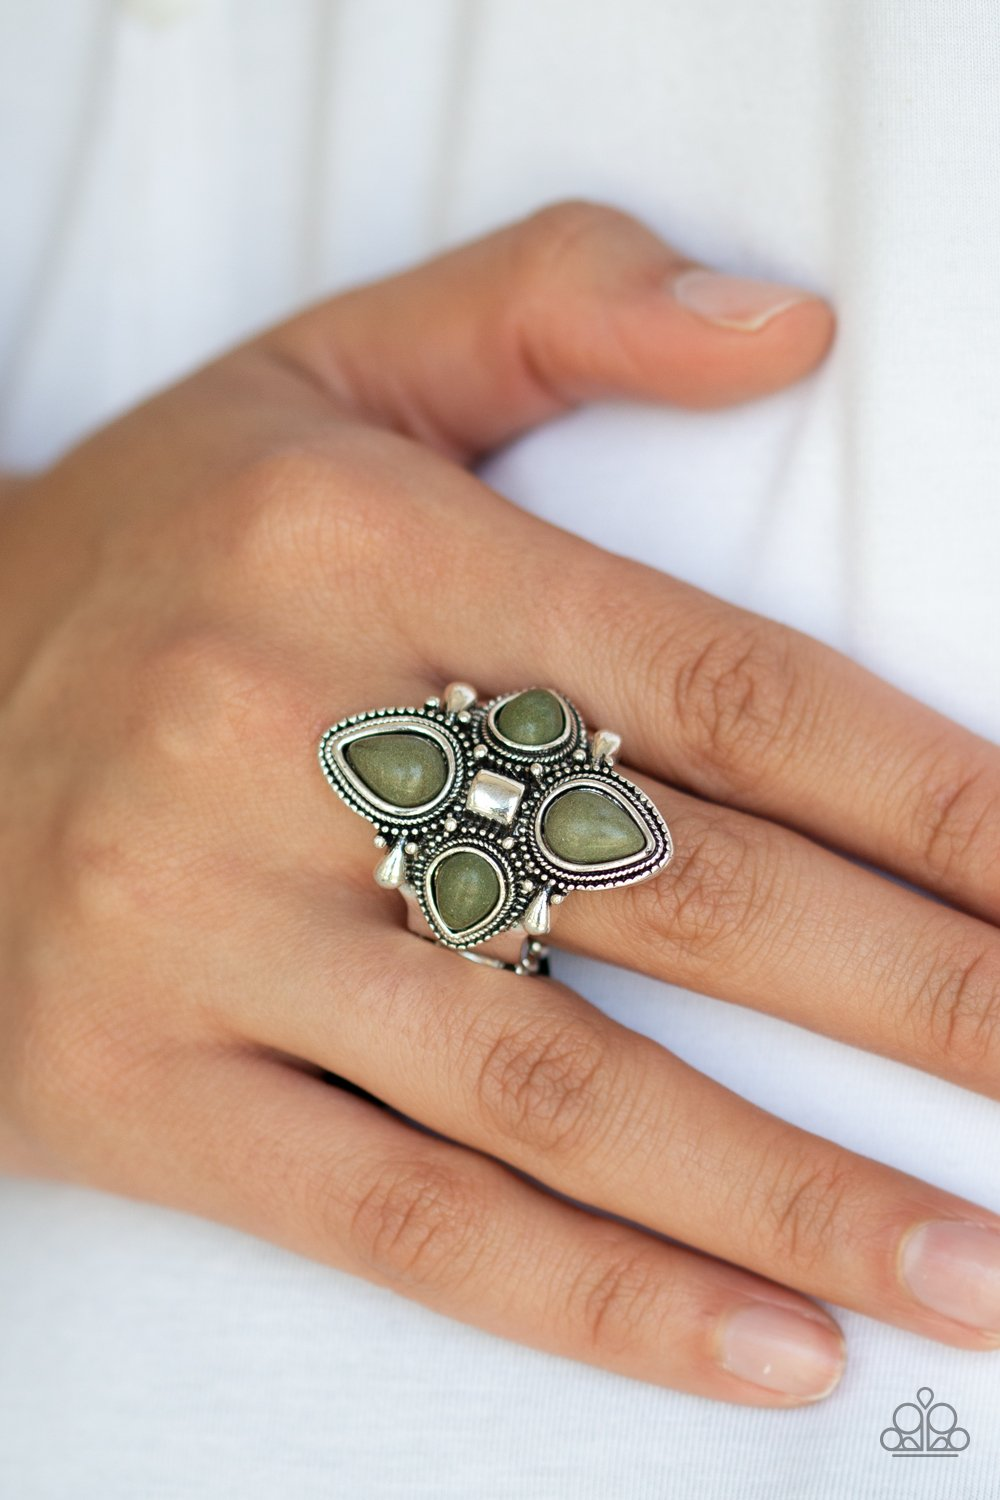 Dune Runner - green - Paparazzi ring